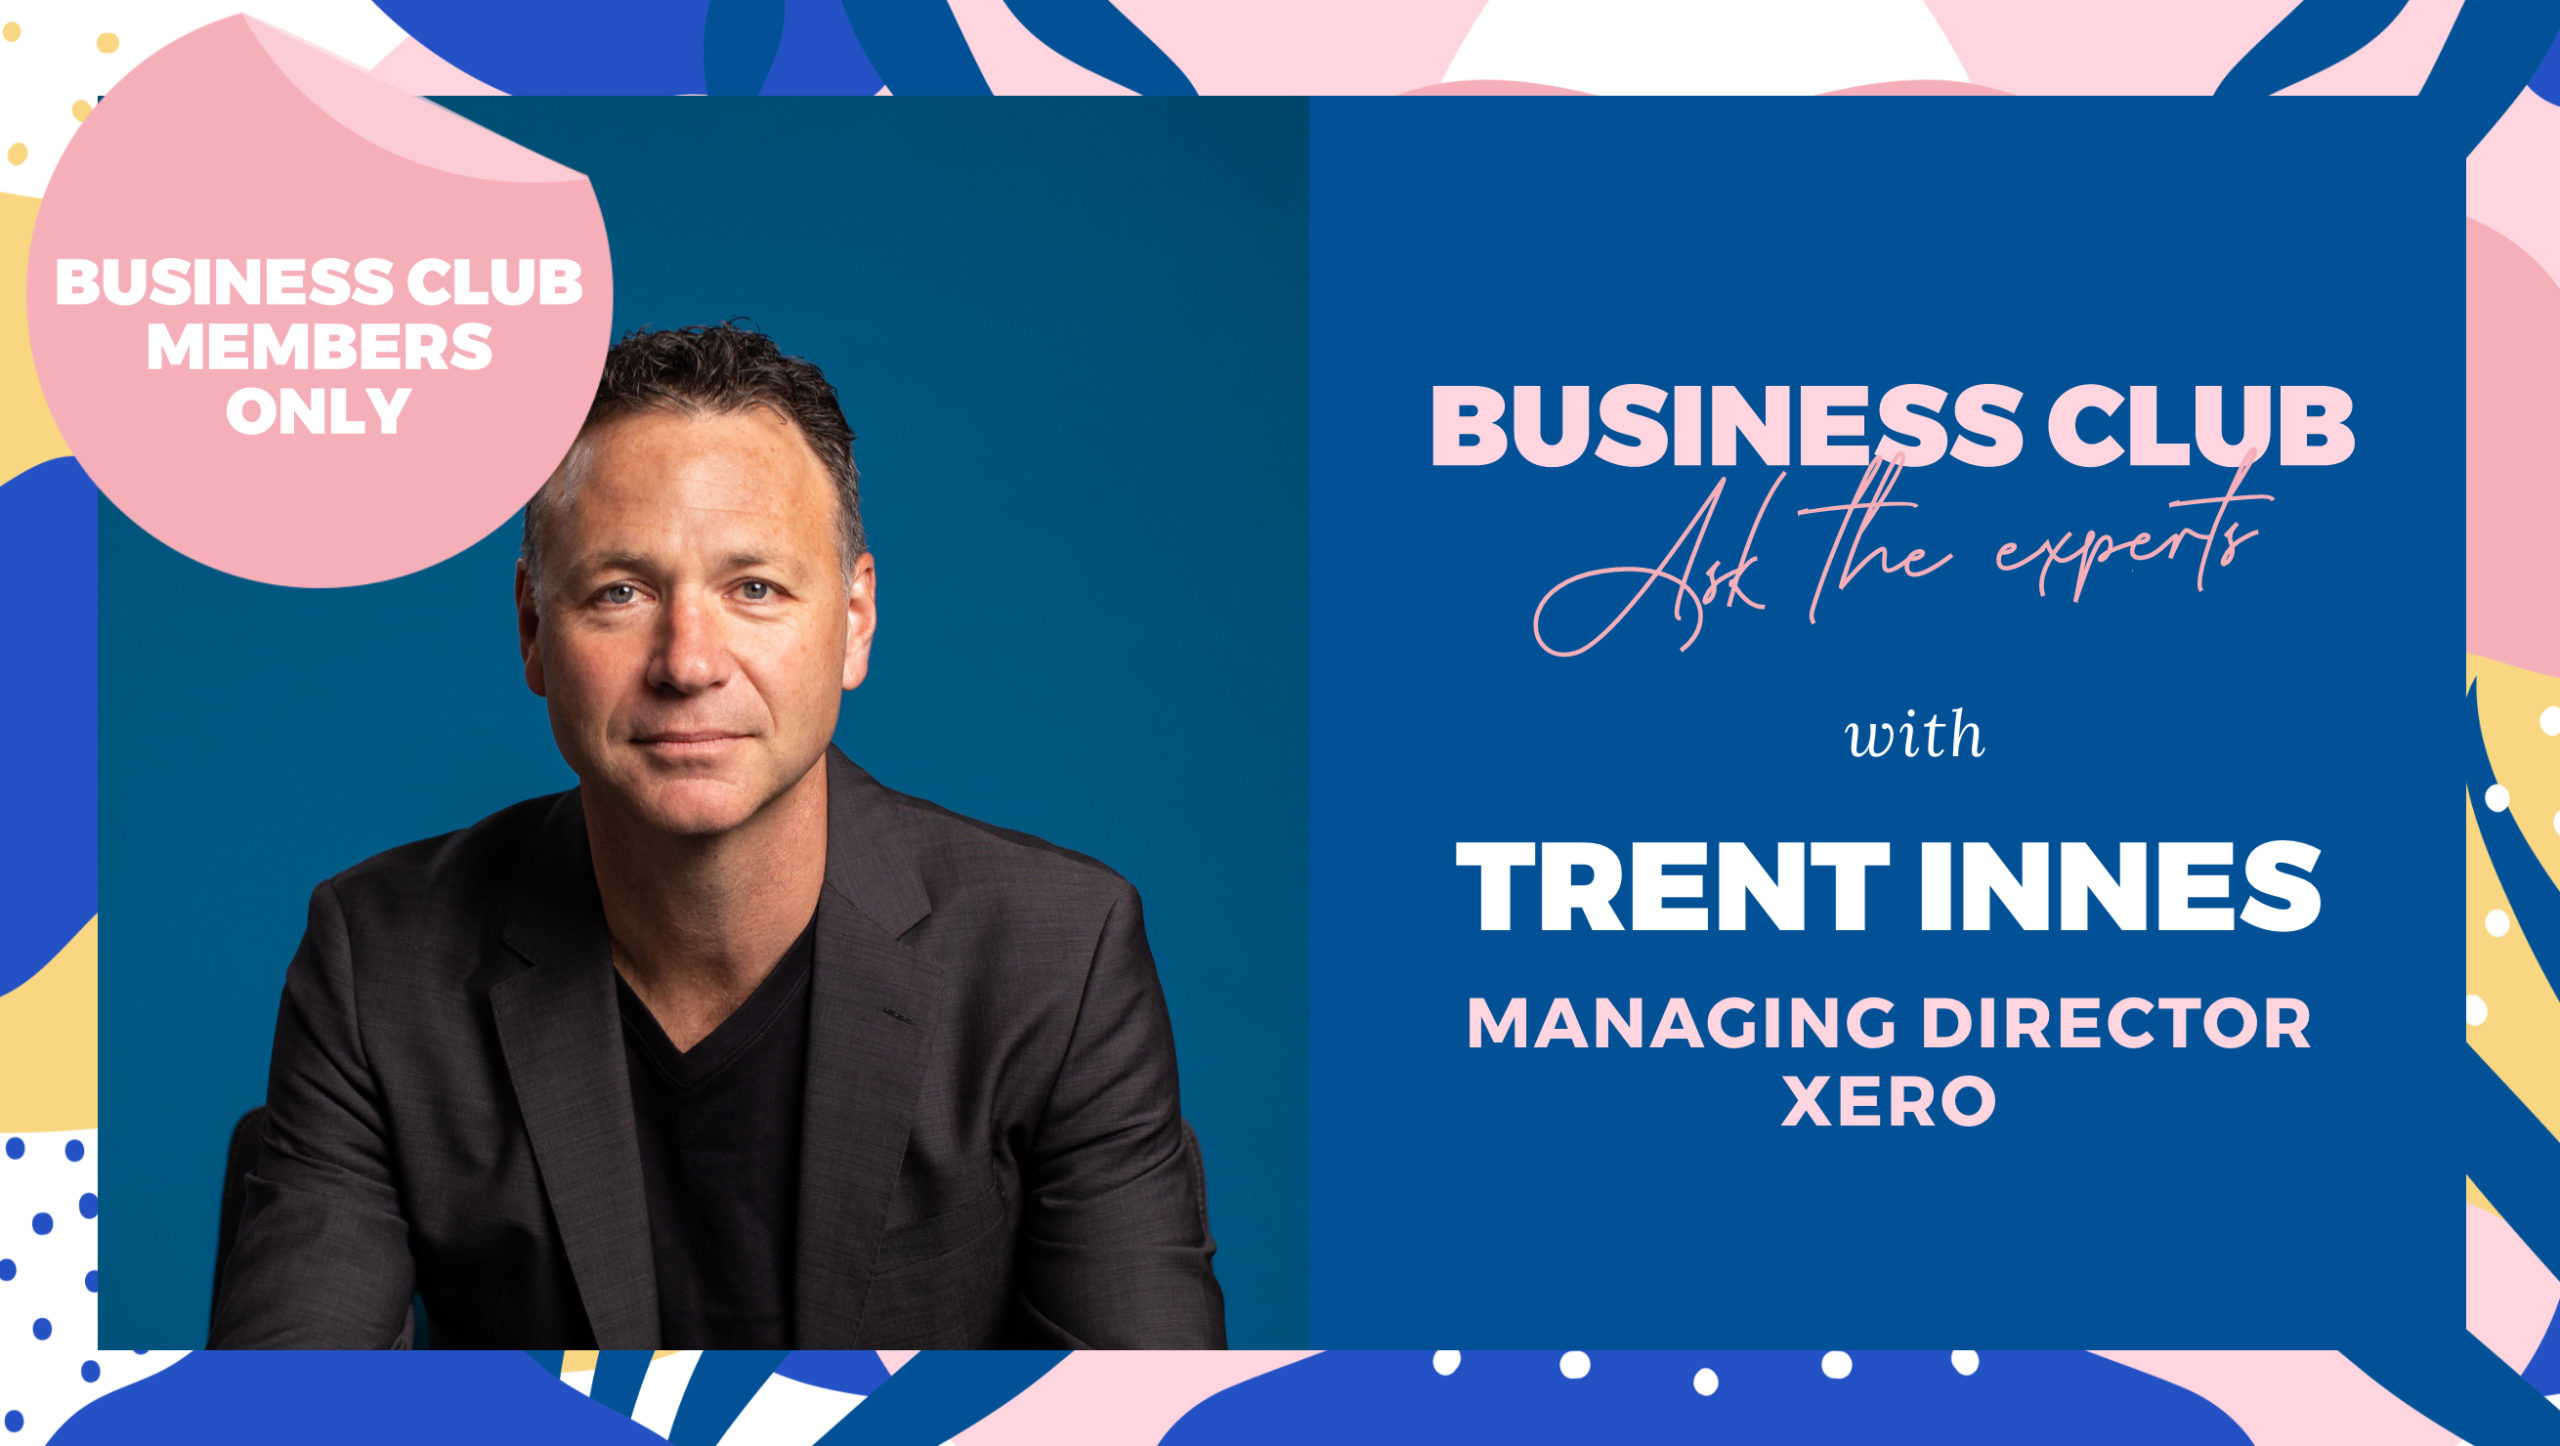 Business Club Members: Small Business Insights with Trent Innes, Managing Director – Xero